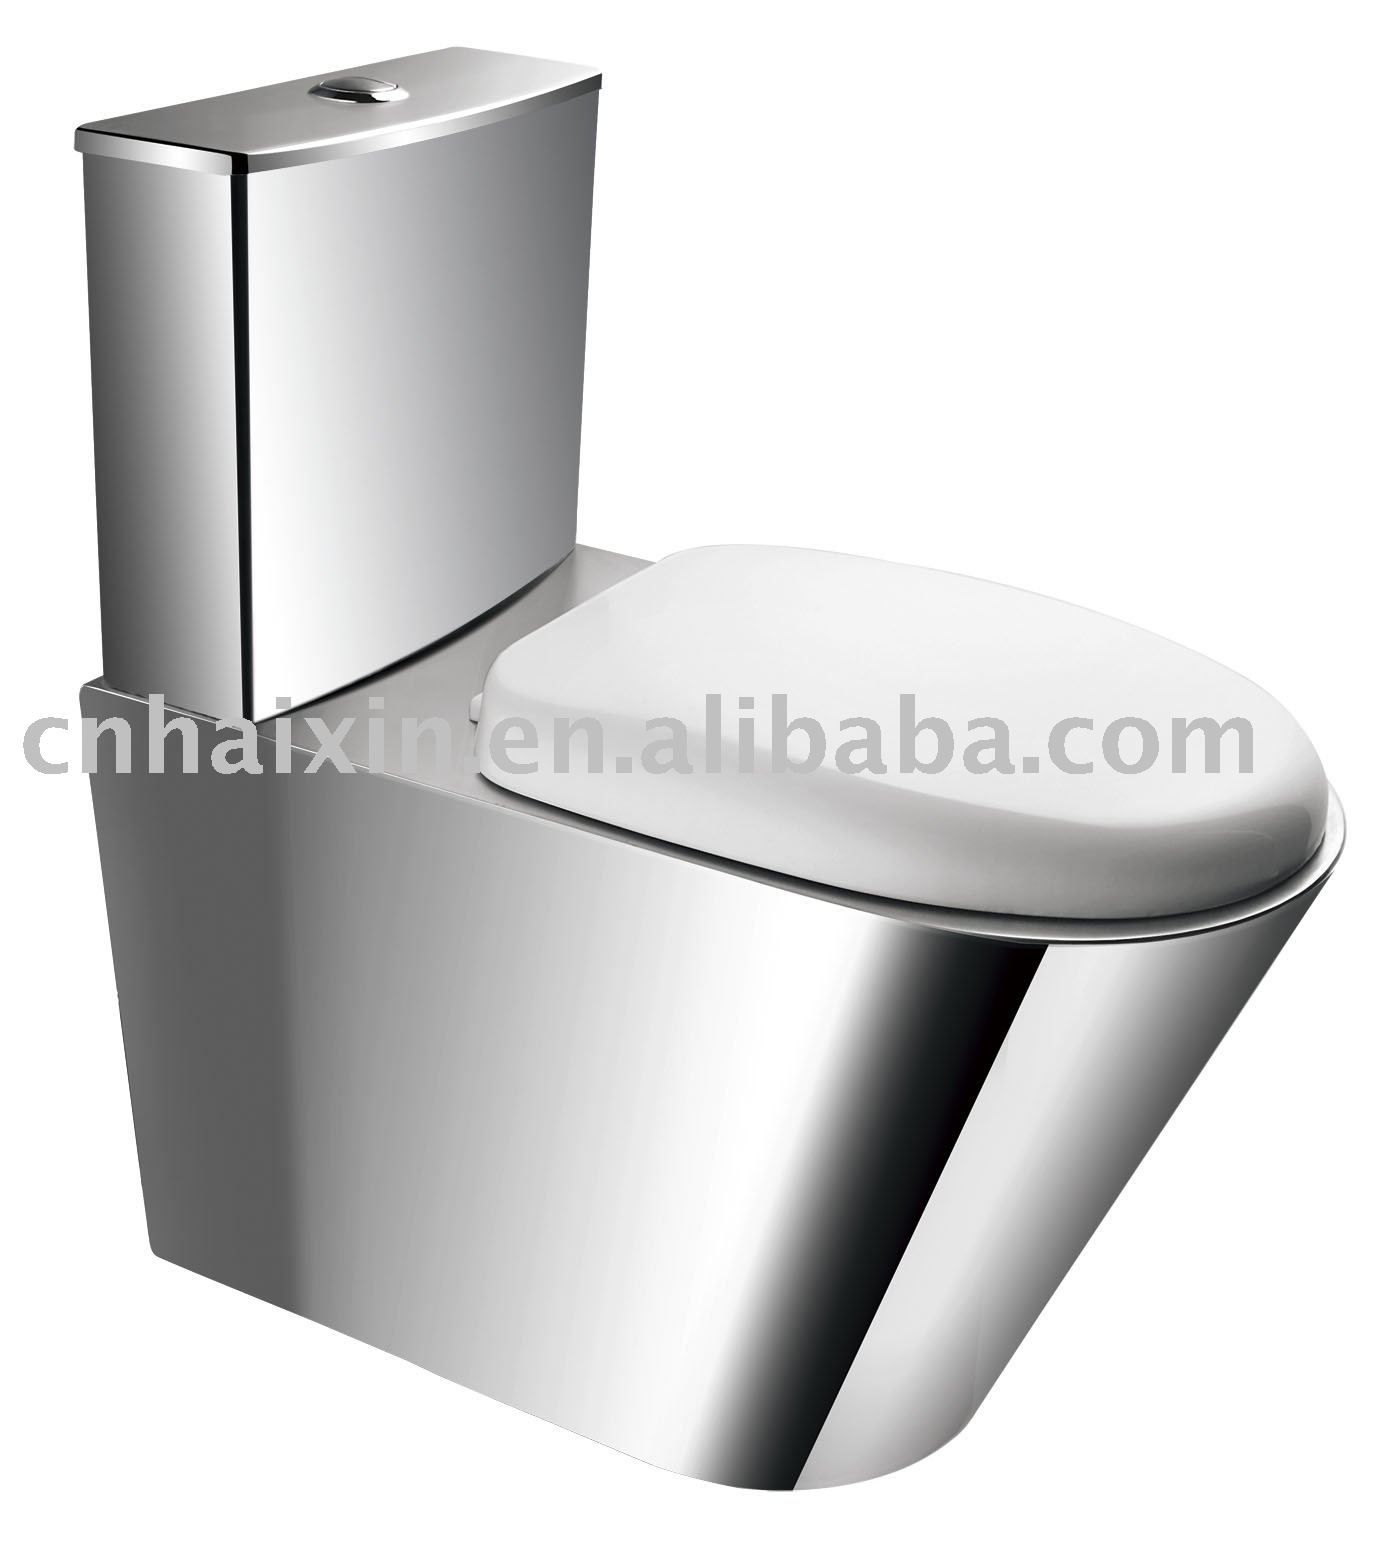 Stainless Toilet Stainless Steel Toilet View Stainless Steel